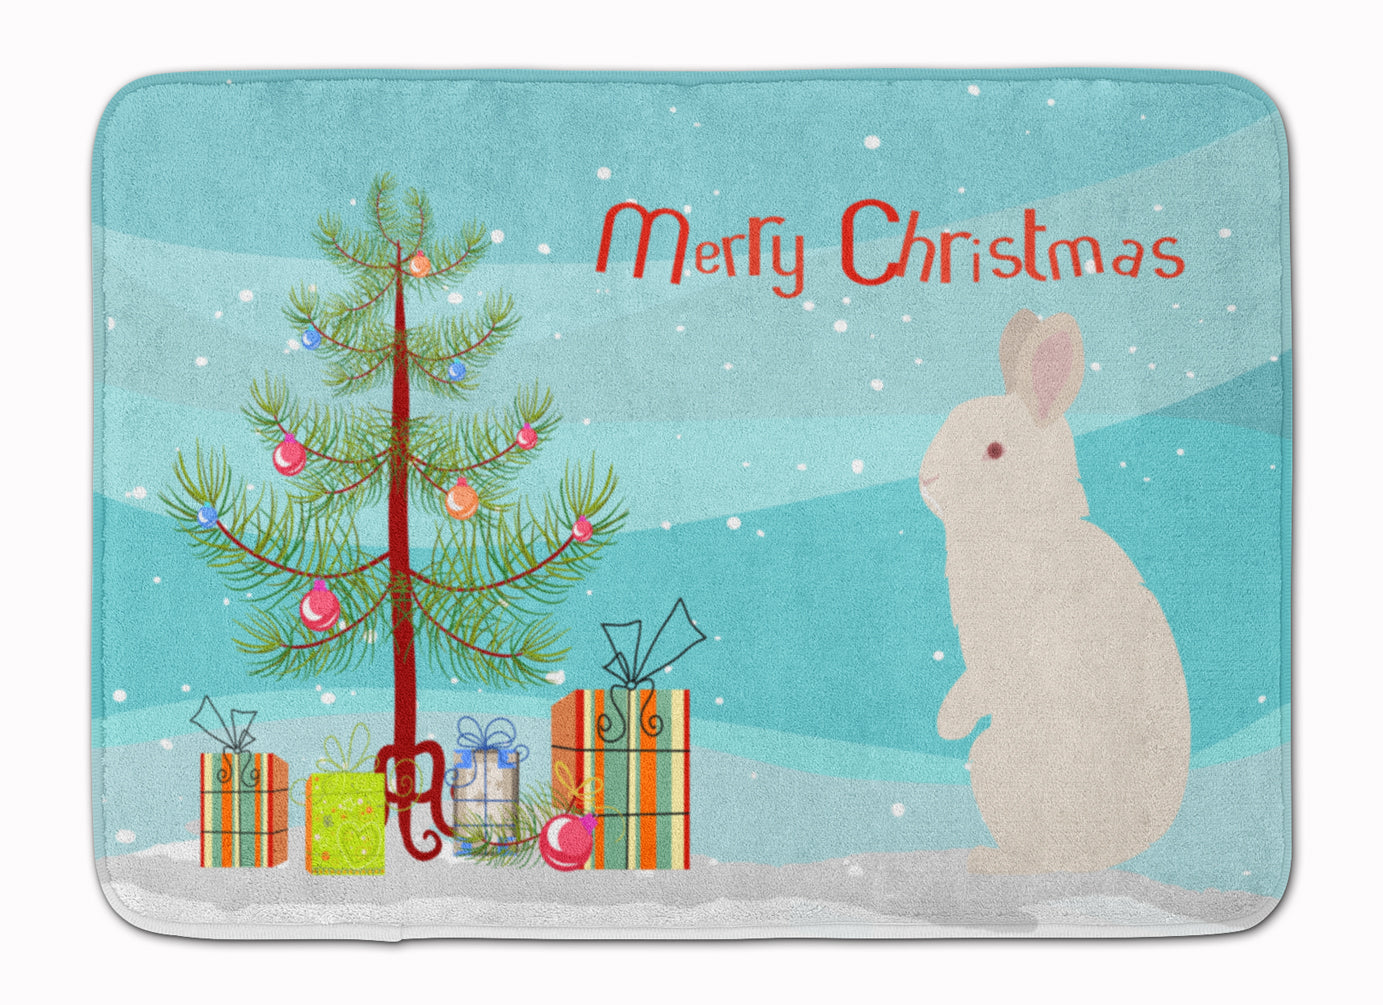 New Zealand White Rabbit Christmas Machine Washable Memory Foam Mat BB9332RUG by Caroline's Treasures